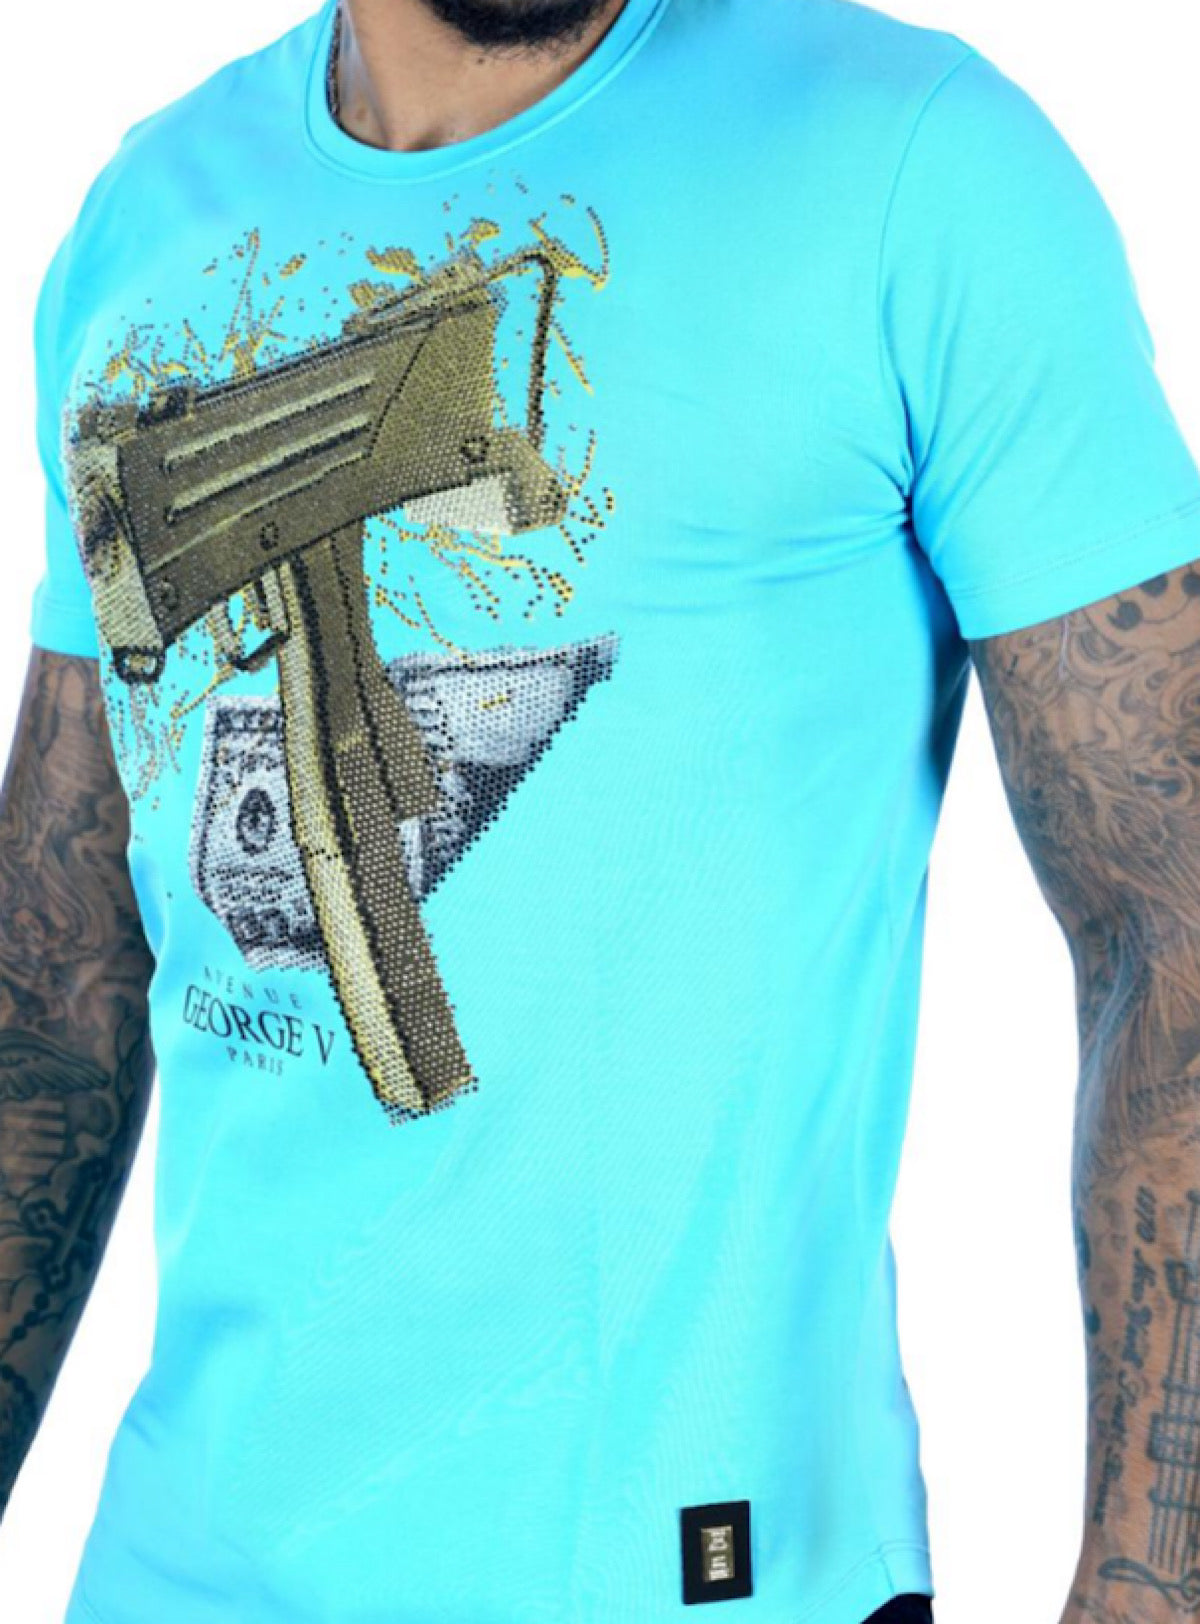 George V T-Shirt - Gun - Baby Blue - GV2067